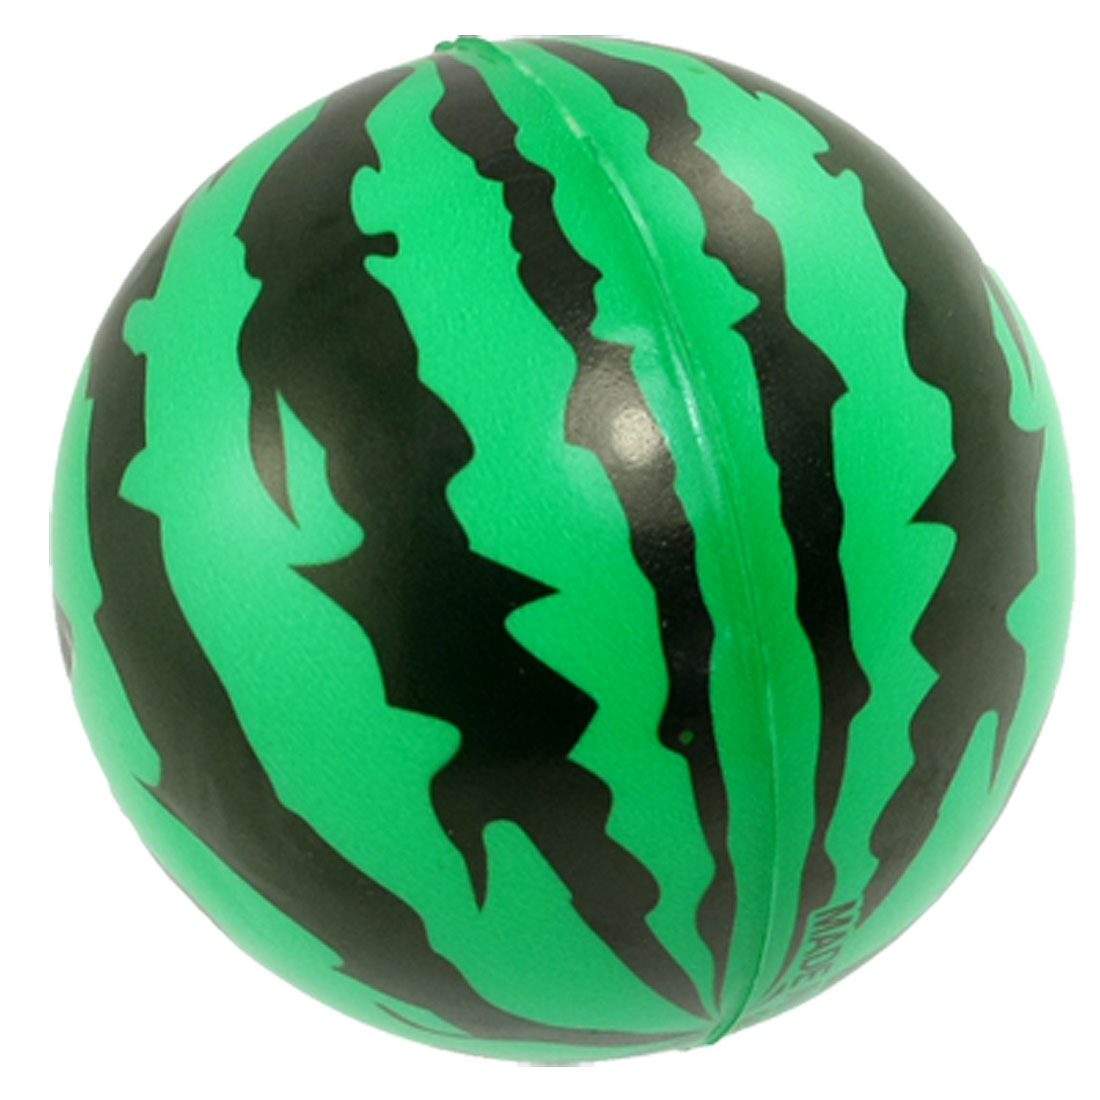 Children Sponge Green Black Watermelons Ball Playing Toy